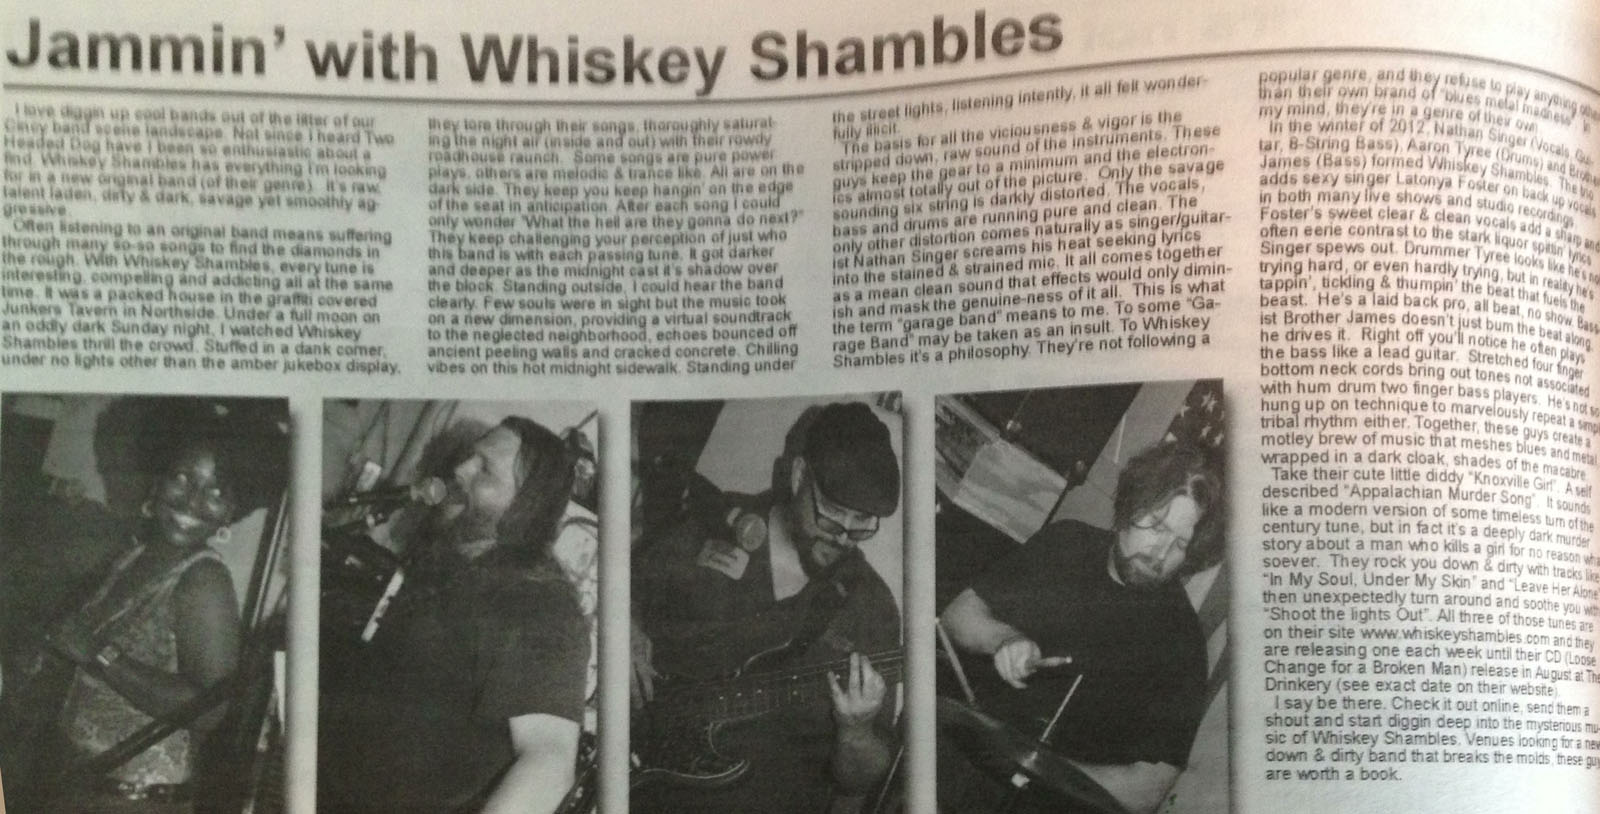 The Whiskey Shambles – 2013-07-01 – CincyVibe article